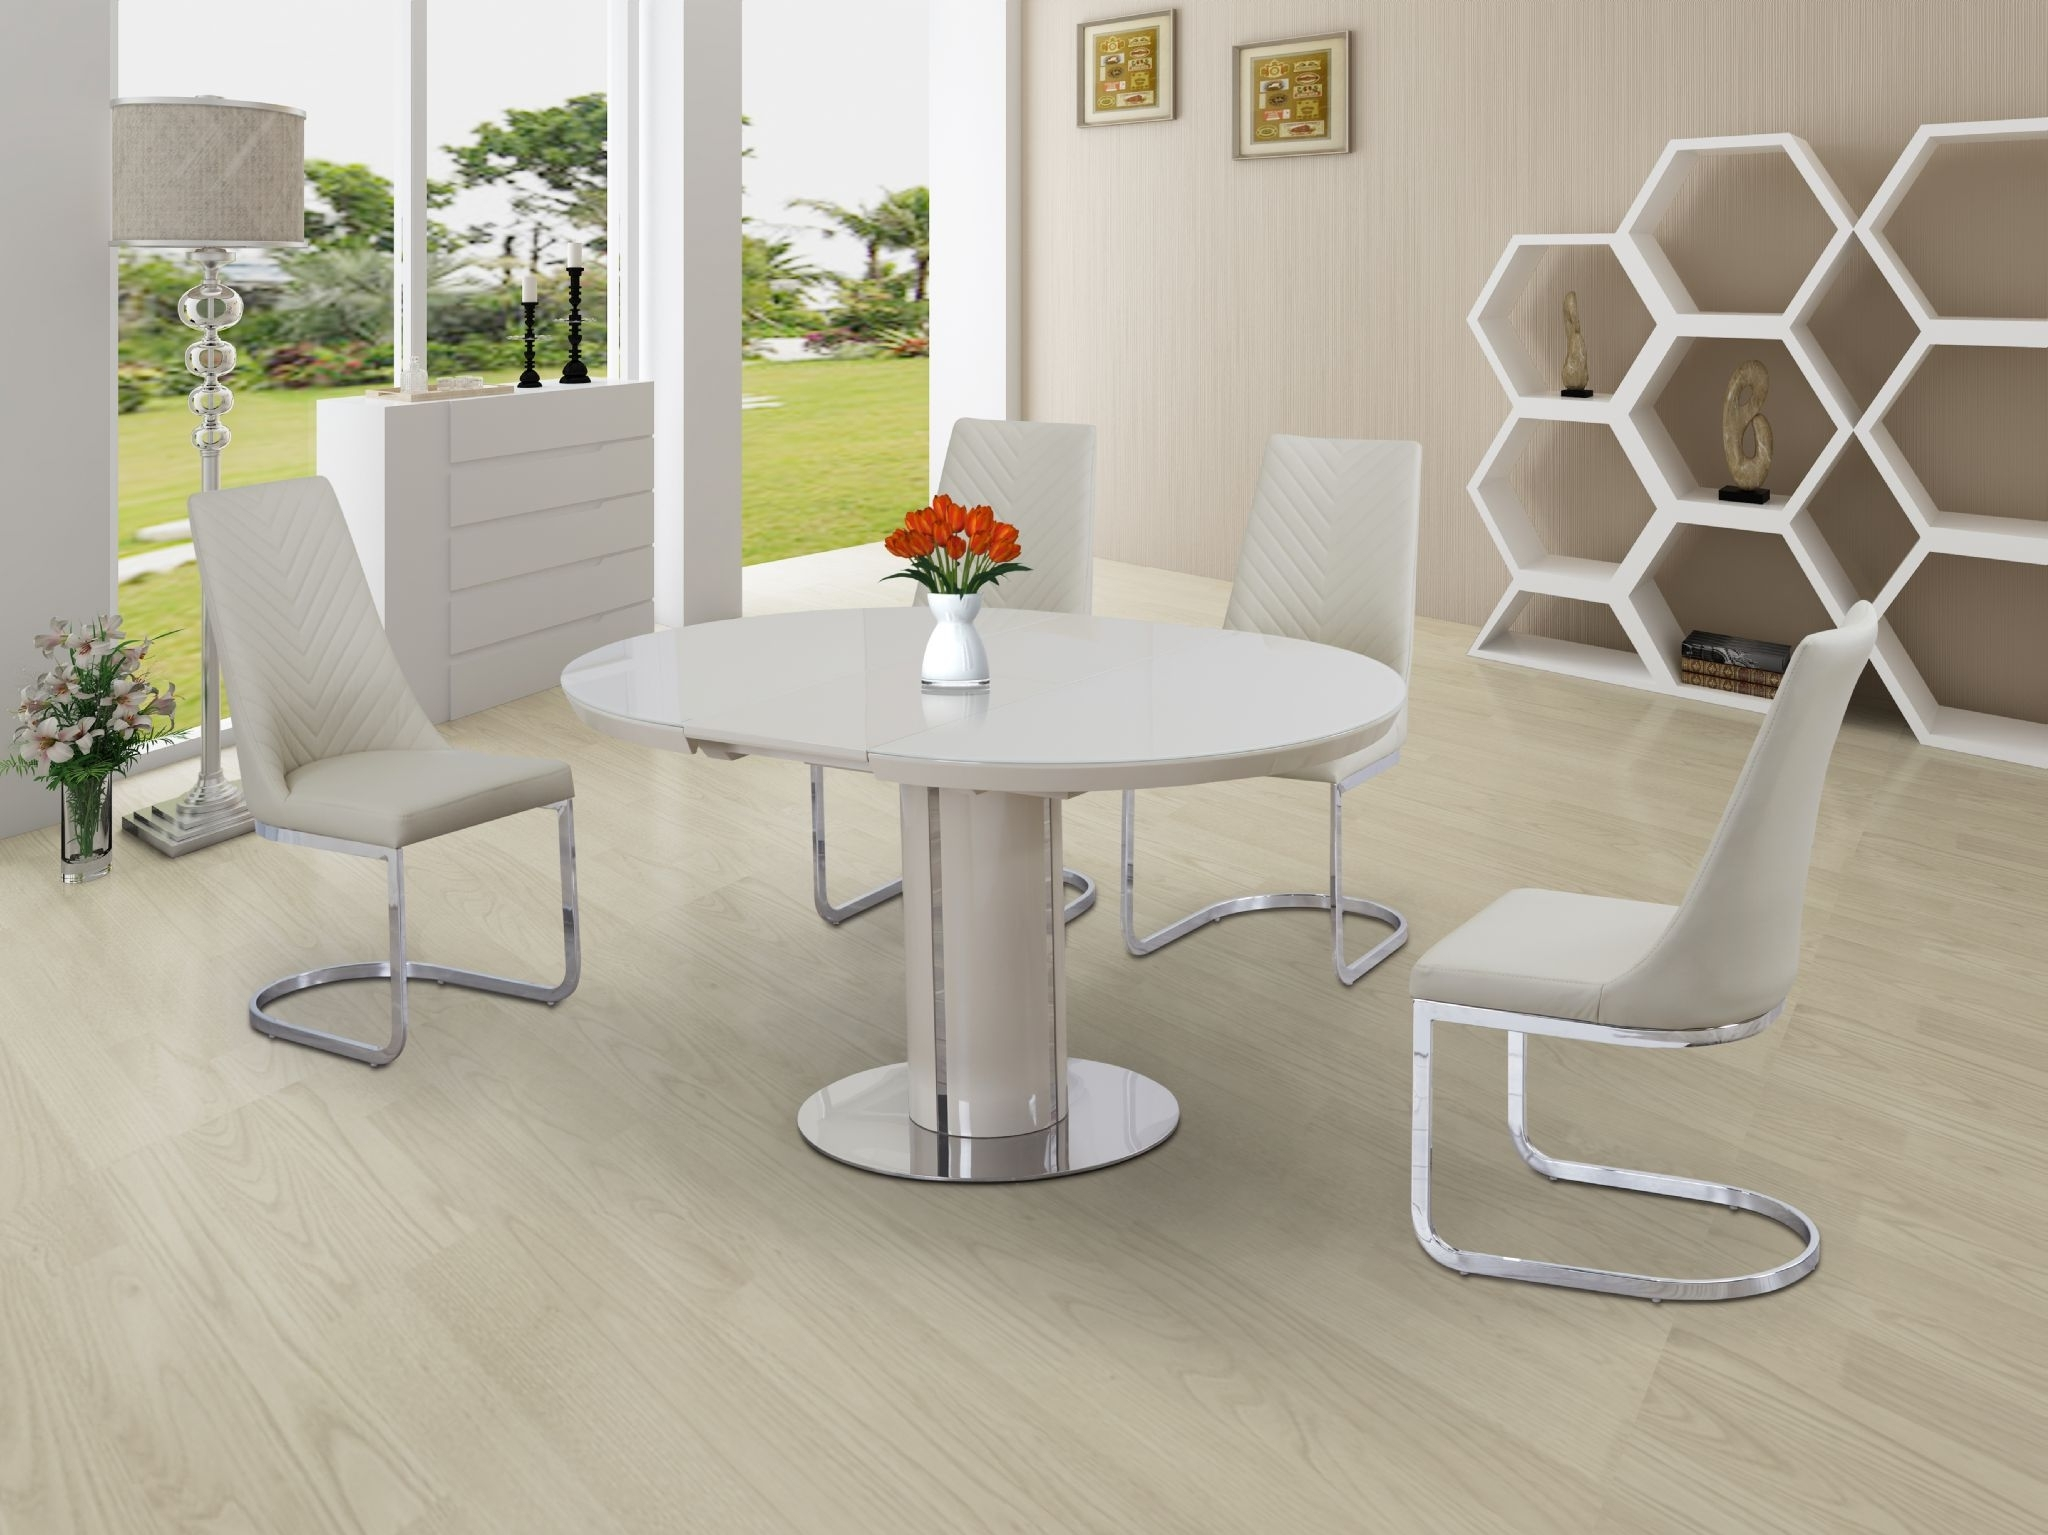 Eclipse Round Oval Gloss & Glass Extending 110 To 145 Cm Dining within Latest Round Dining Tables Extends To Oval